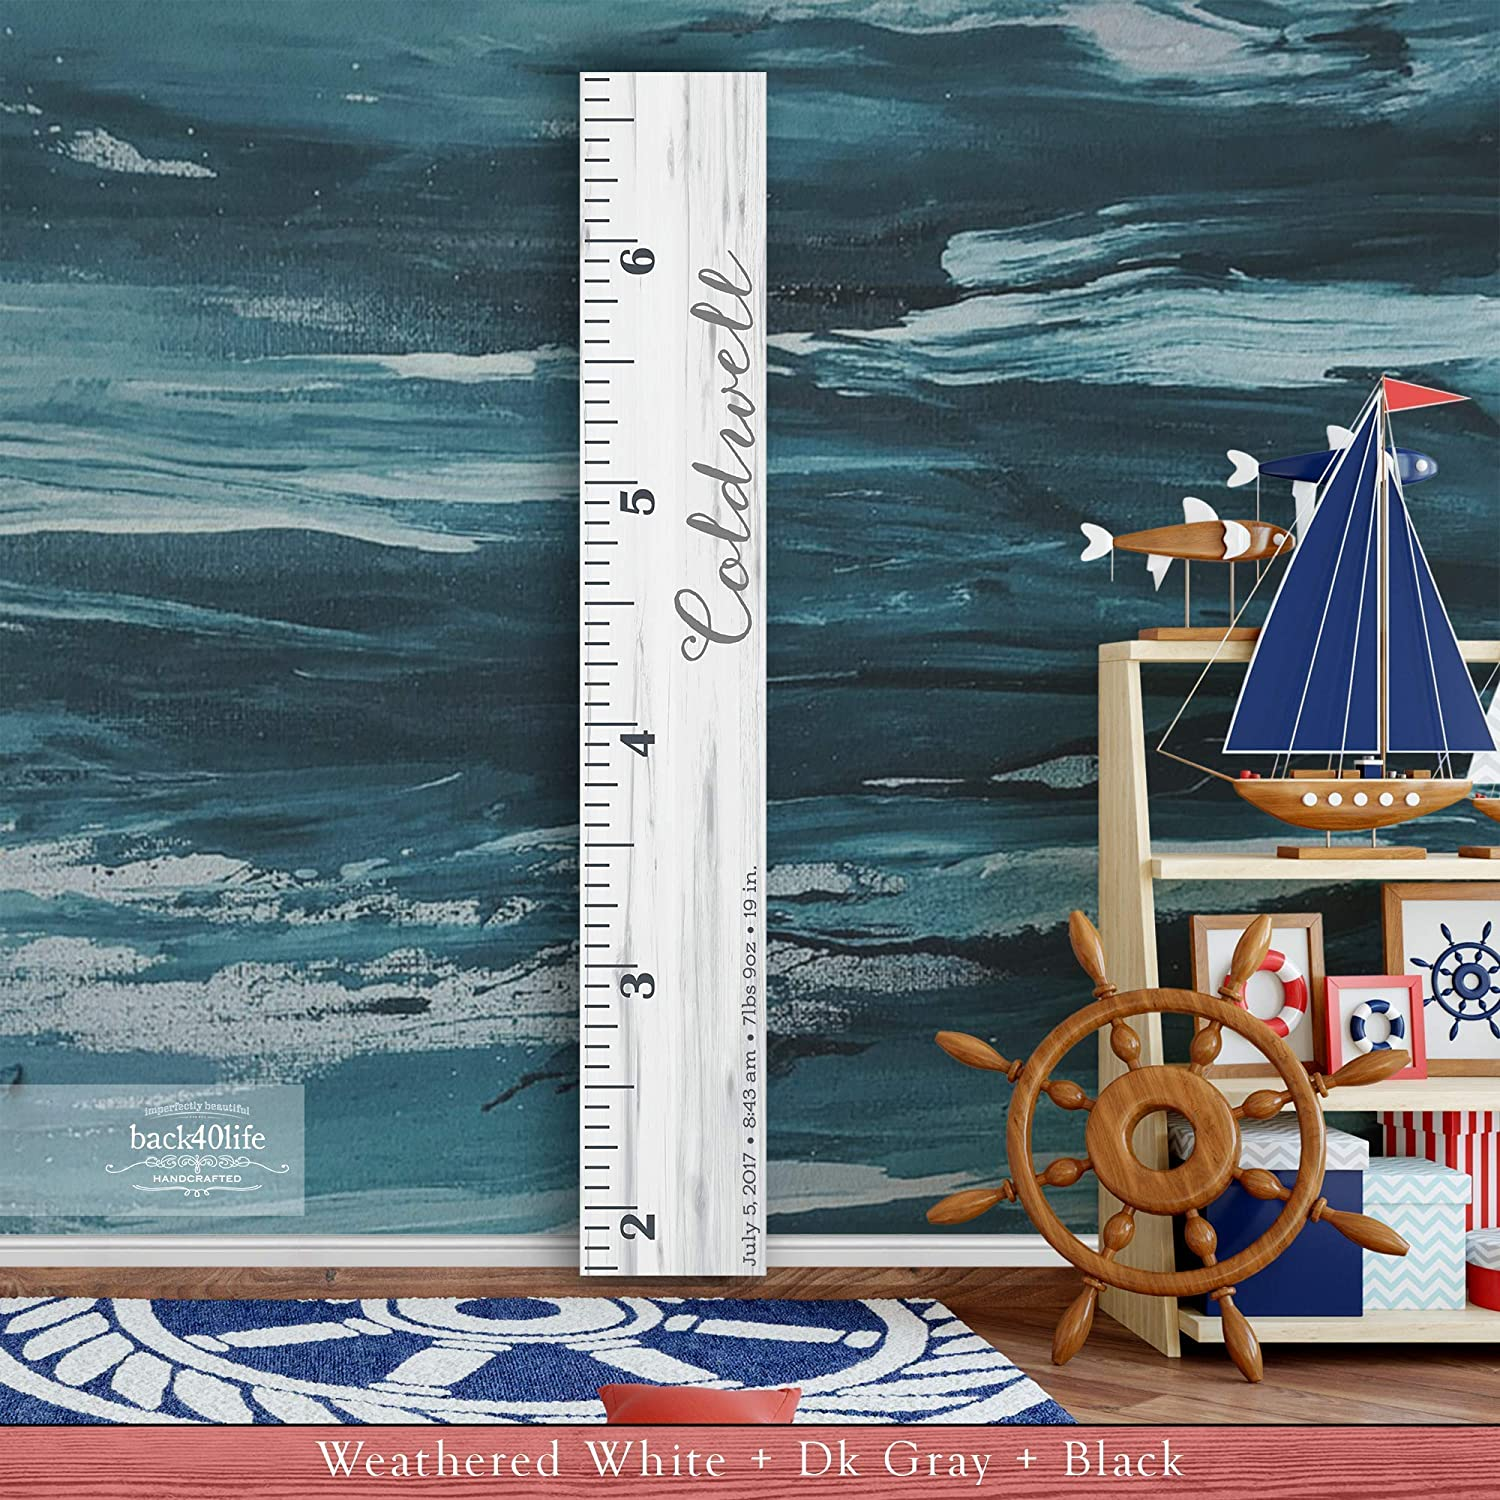 Express Edition The Coldwell by Back40Life Wooden Kids Growth Height Chart Ruler for Boys and Girls Painted